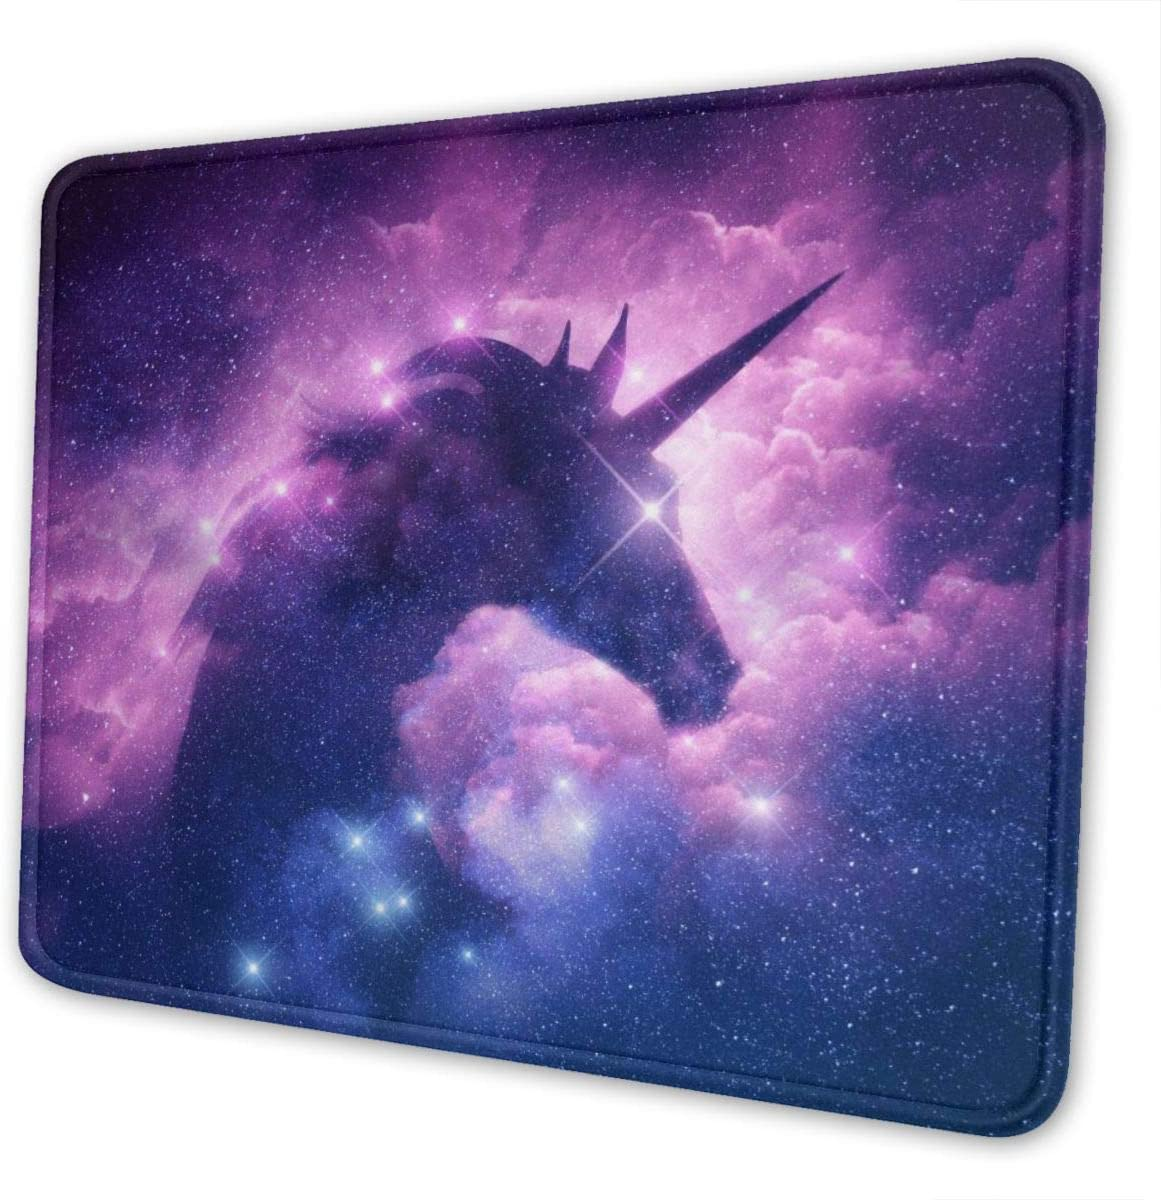 Galaxy Purple Unicorn Mouse Pad, Space Gaming Mouse Mat, Anti-Slip Rubber Mouse Mat with Durable Stitched Edge for Office Laptop Computer PC Men Women Kids 10 X 12 Inch